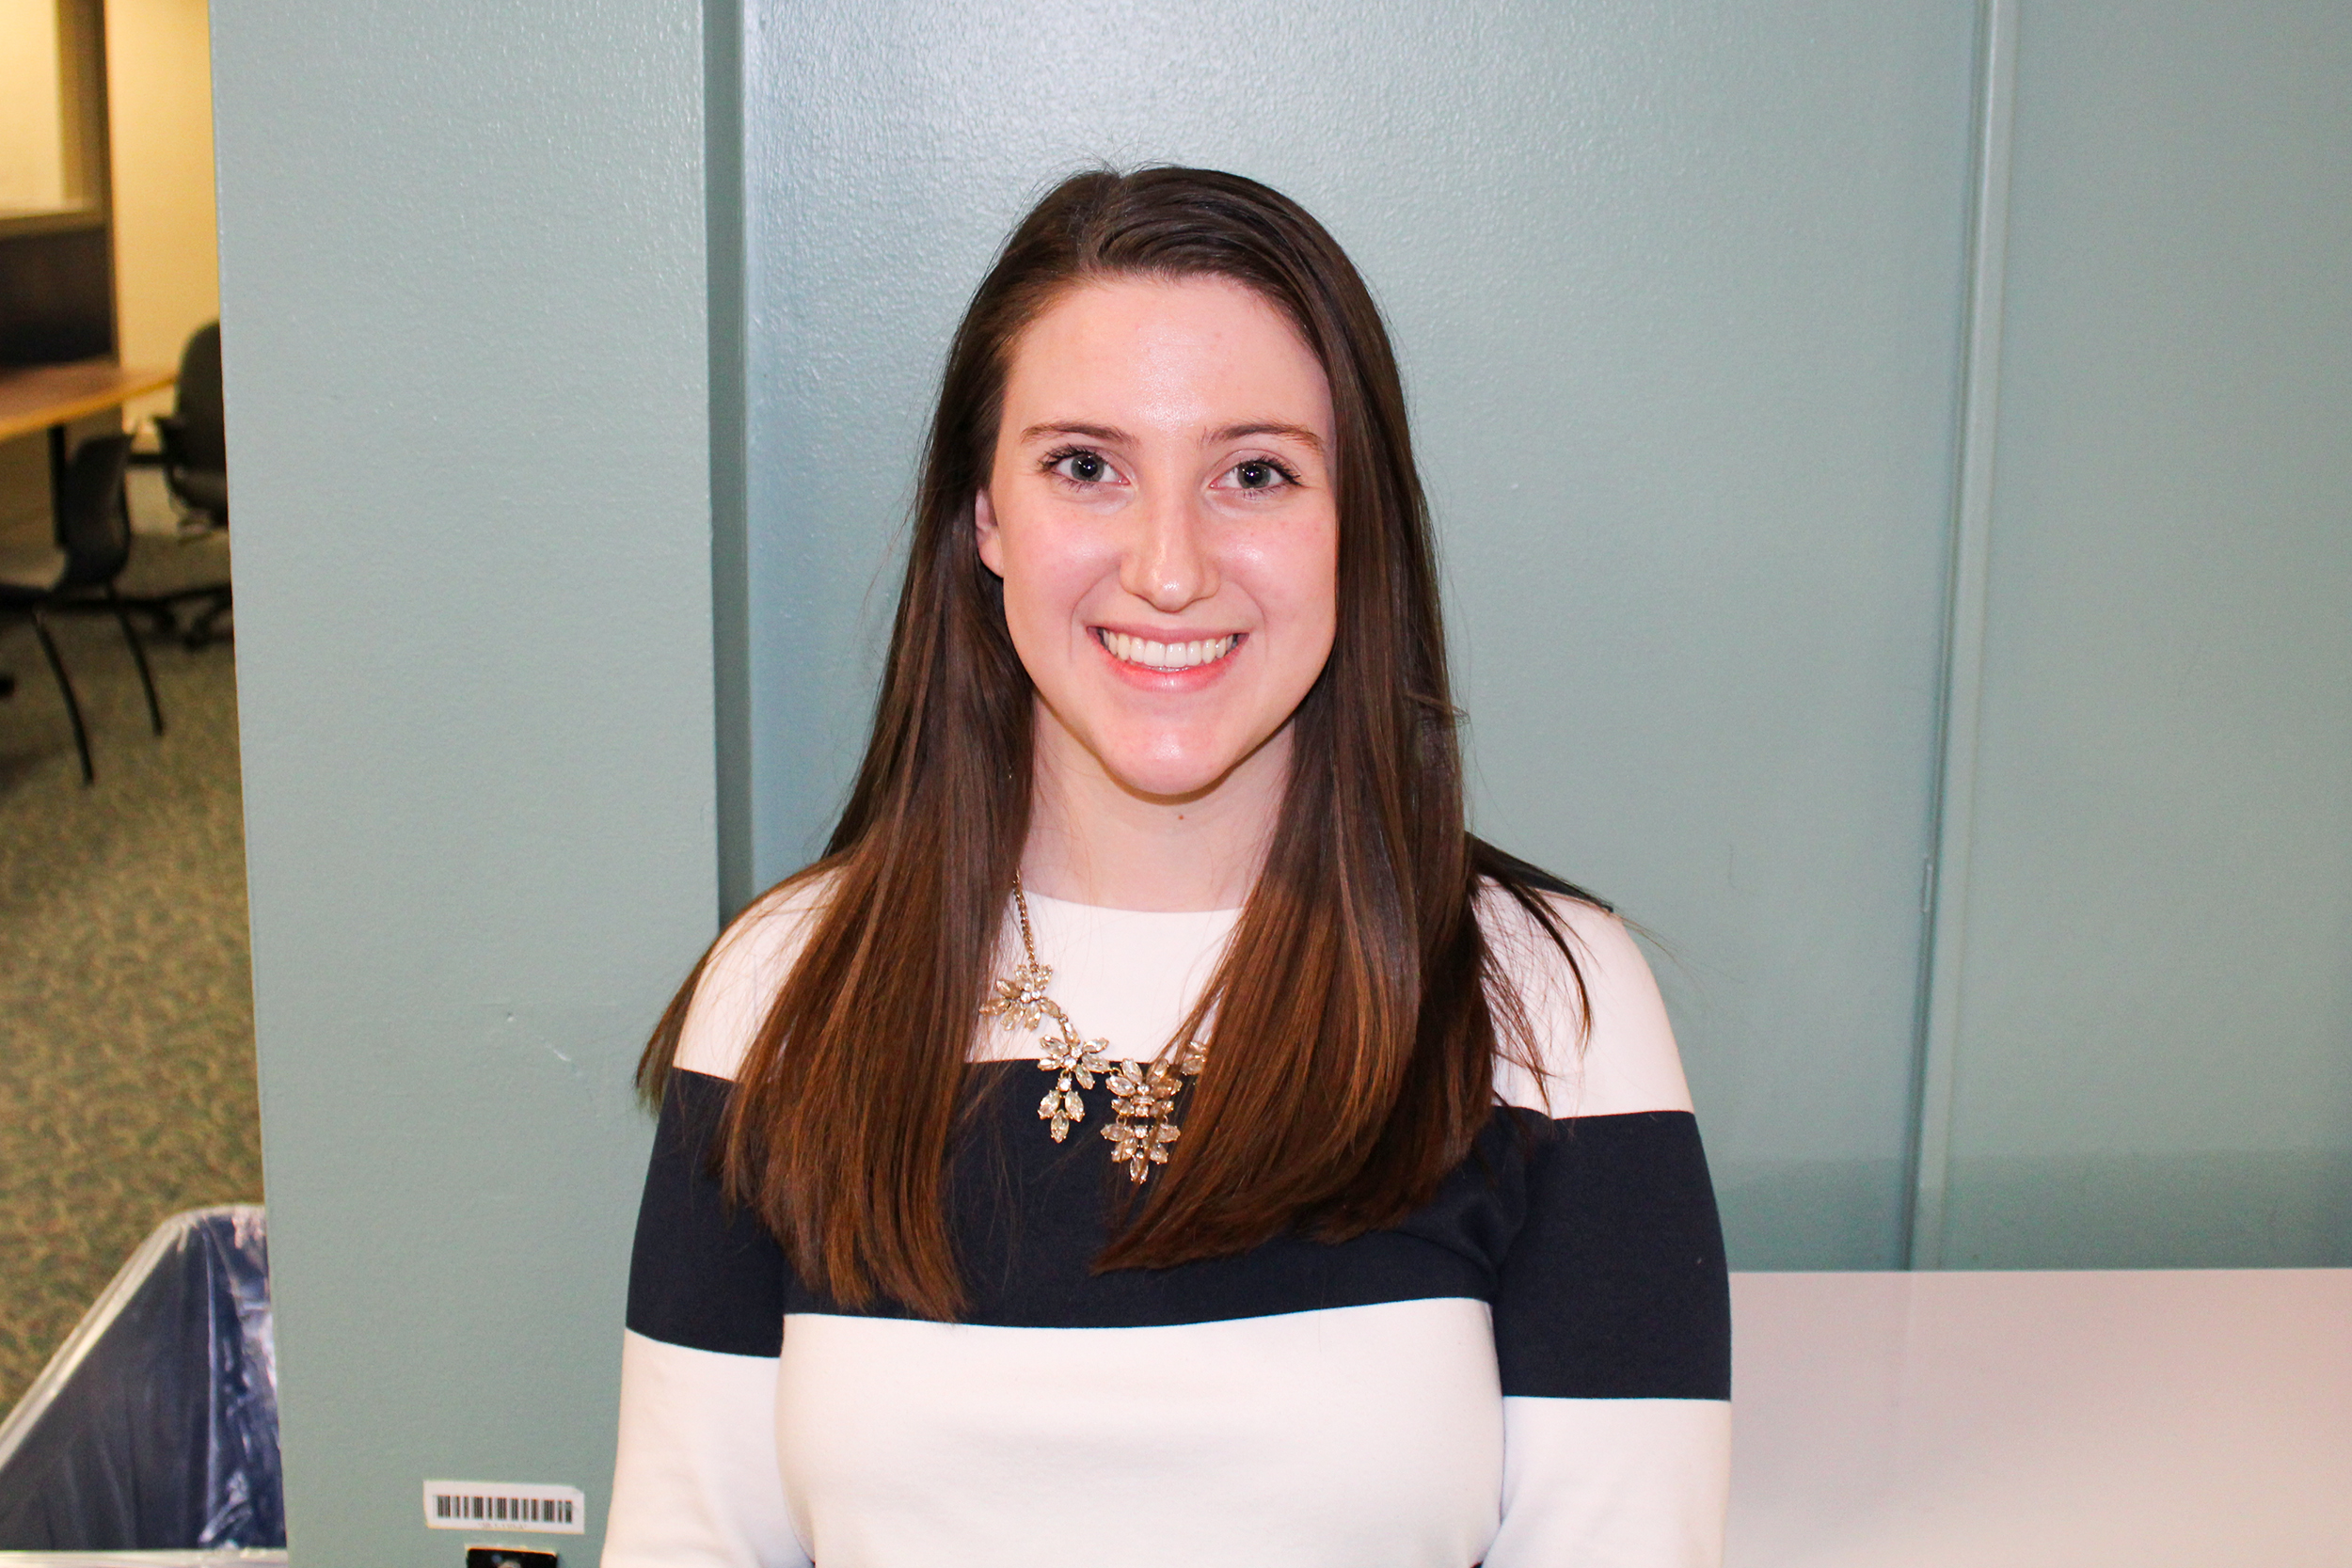 Emily Matura is a communication and political science double major junior who is running to be the SA President for the next academic year. She is one of two candidates running for the position. Matura currently serves as SA Director of Inter-Residence Affairs (Malachy Dempsey/Managing editor)